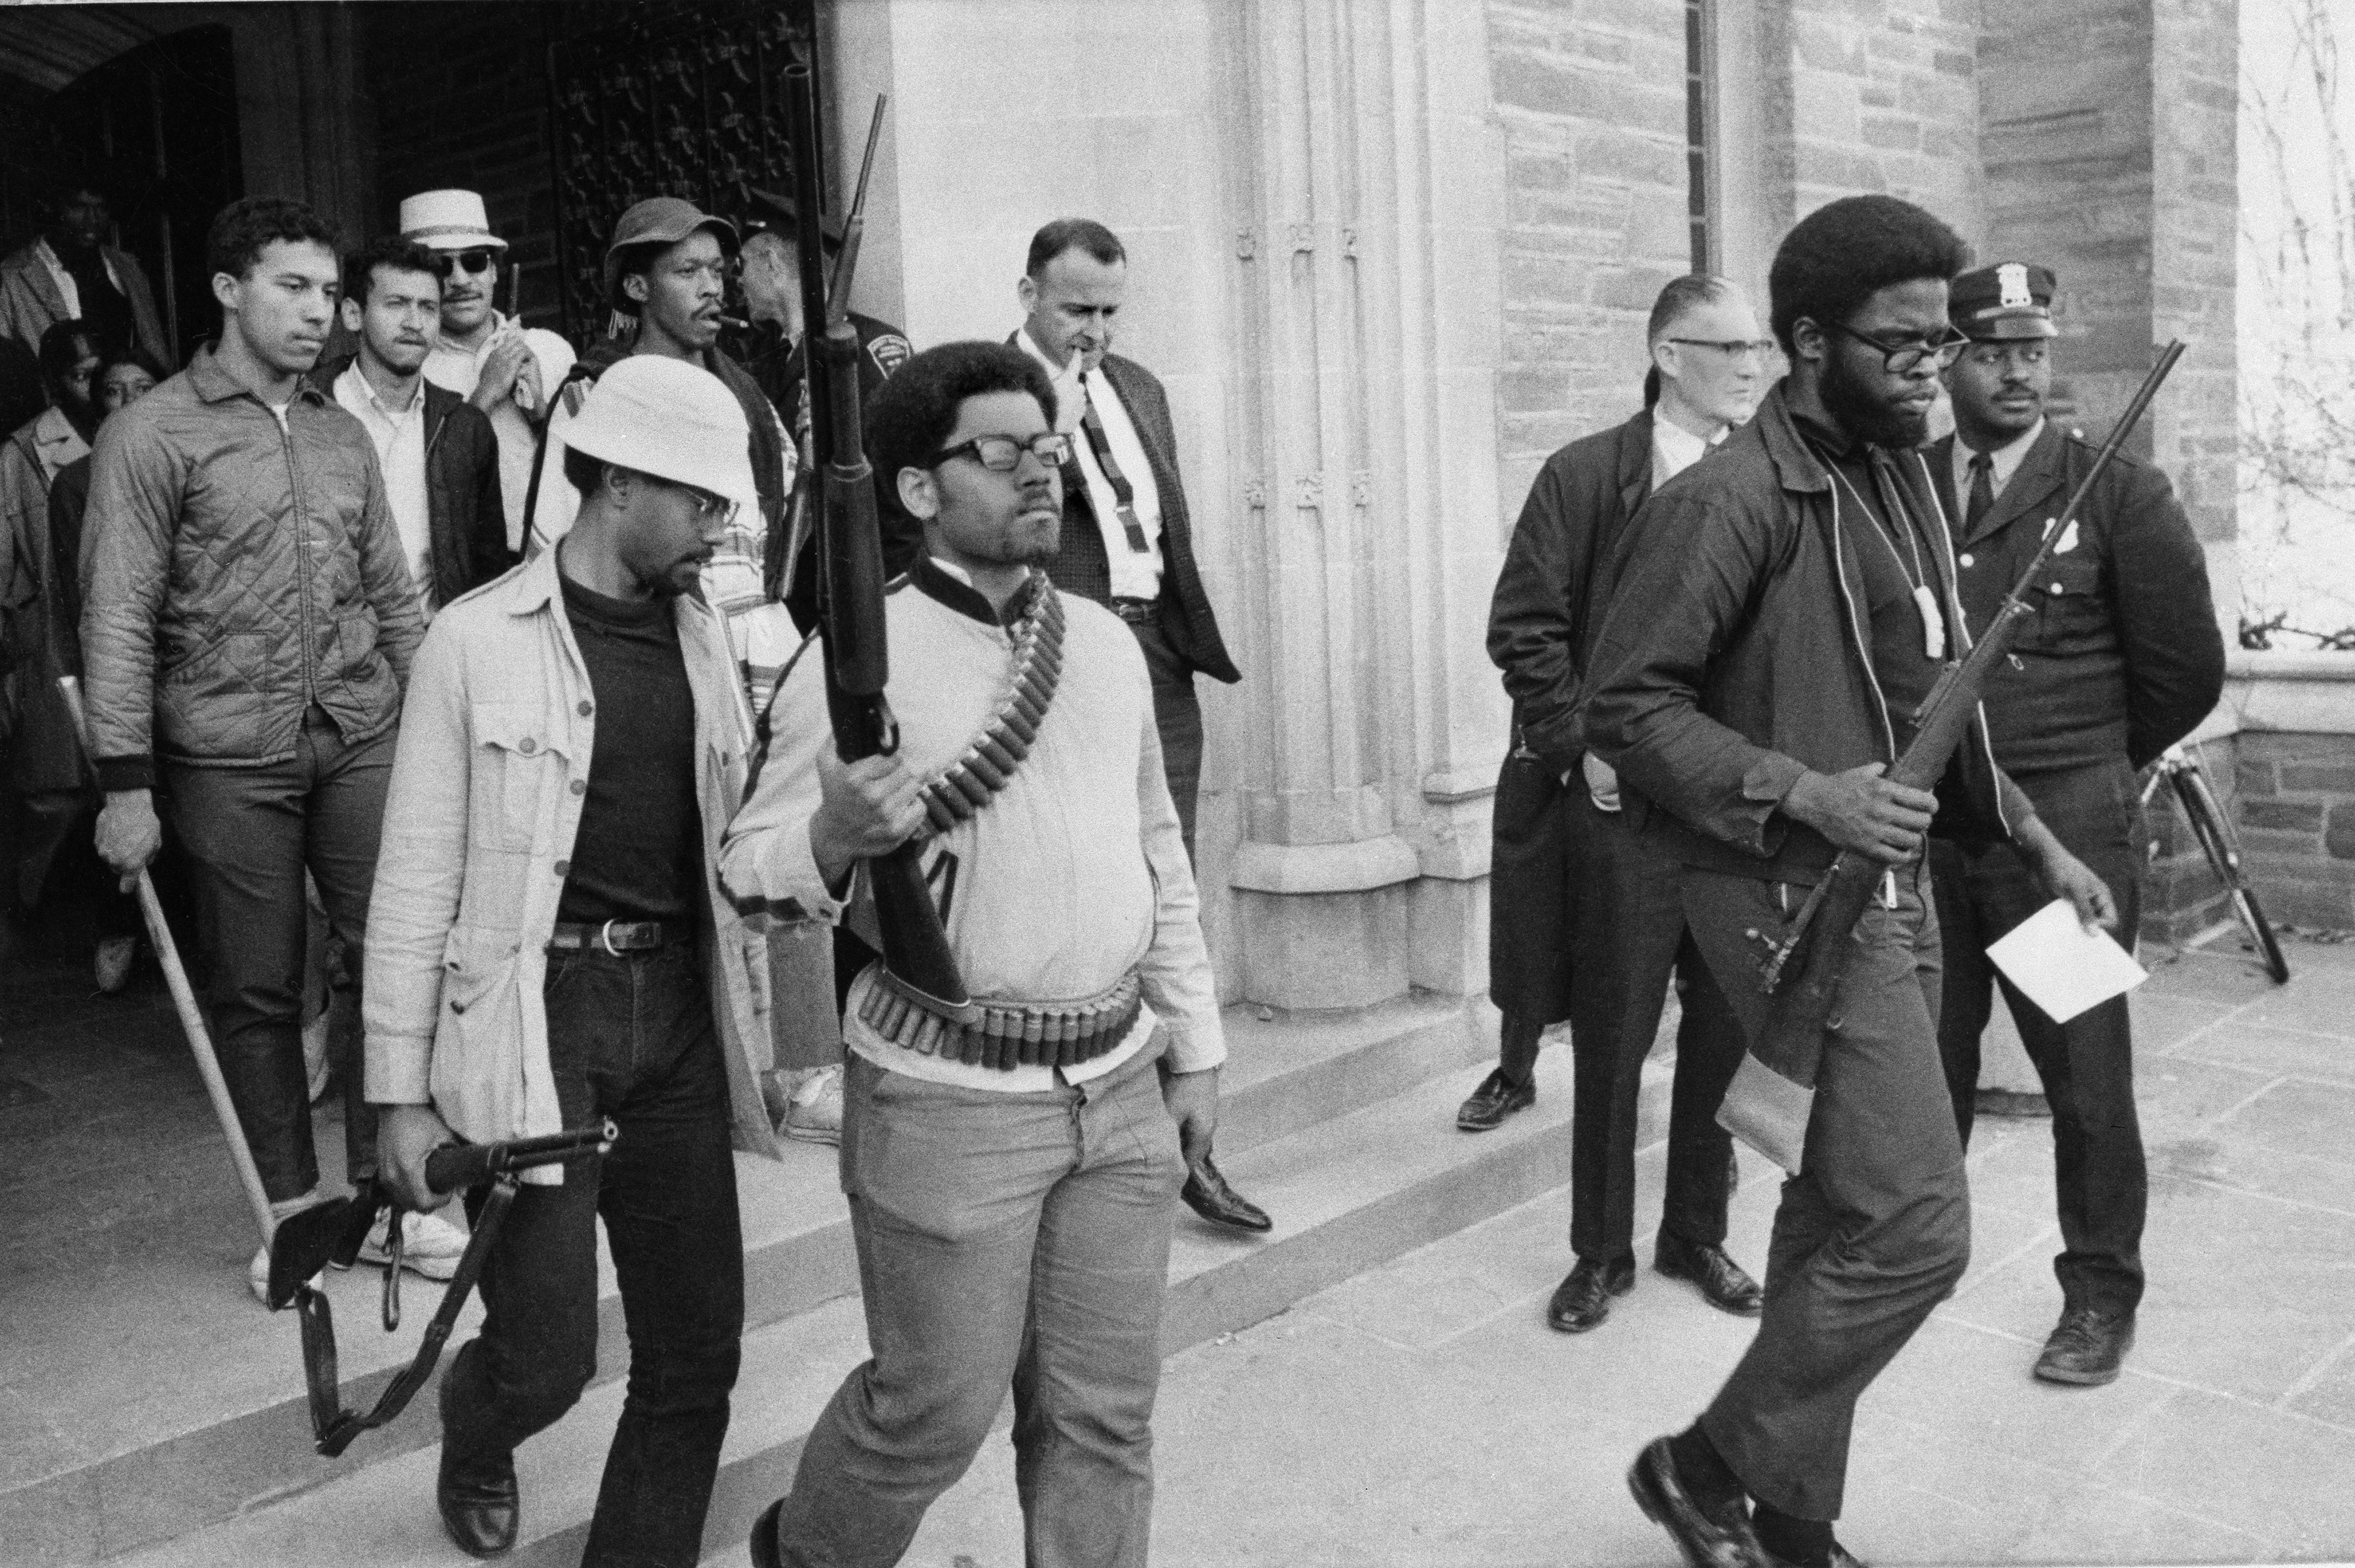 Armed students led by Ed Whitfield, far right, leave Straight Hall at Cornell University in Ithaca, N.Y., after a 36-hour sit-in, April 20, 1969. The students had barricaded themselves in the building demanding a degree-granting African American studies program. University administrators offered to drop some charges against the students and accelerate the opening of an African-American studies center. (AP Photo/Steve Starr)